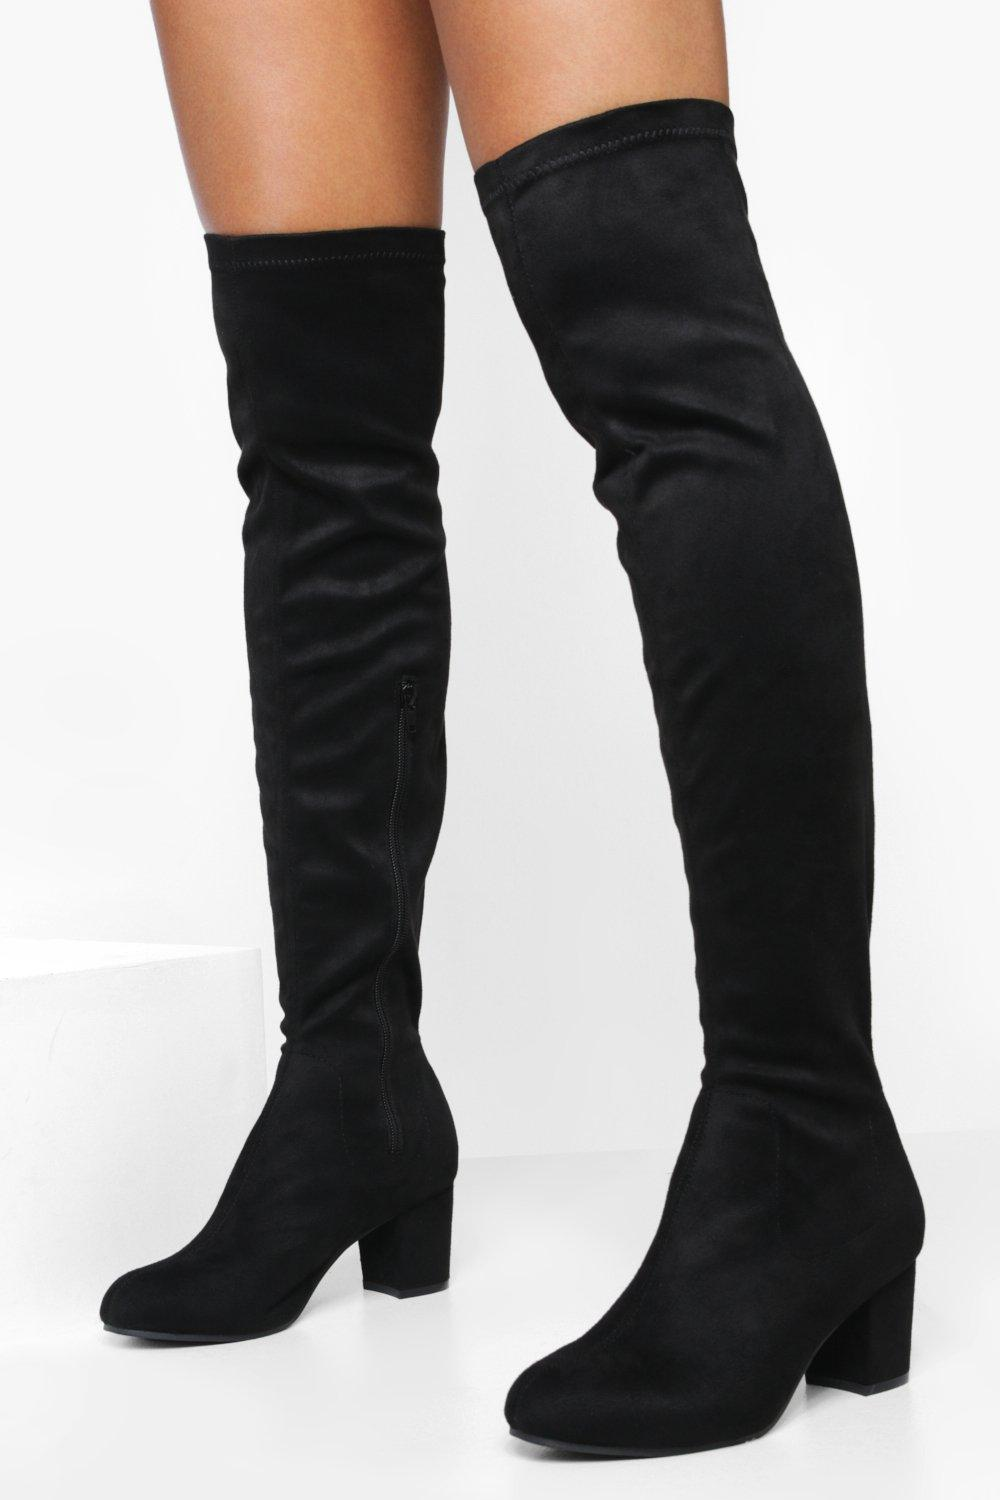 04d1e8345ad Block Heel Stretch Knee High Boots. Hover to zoom